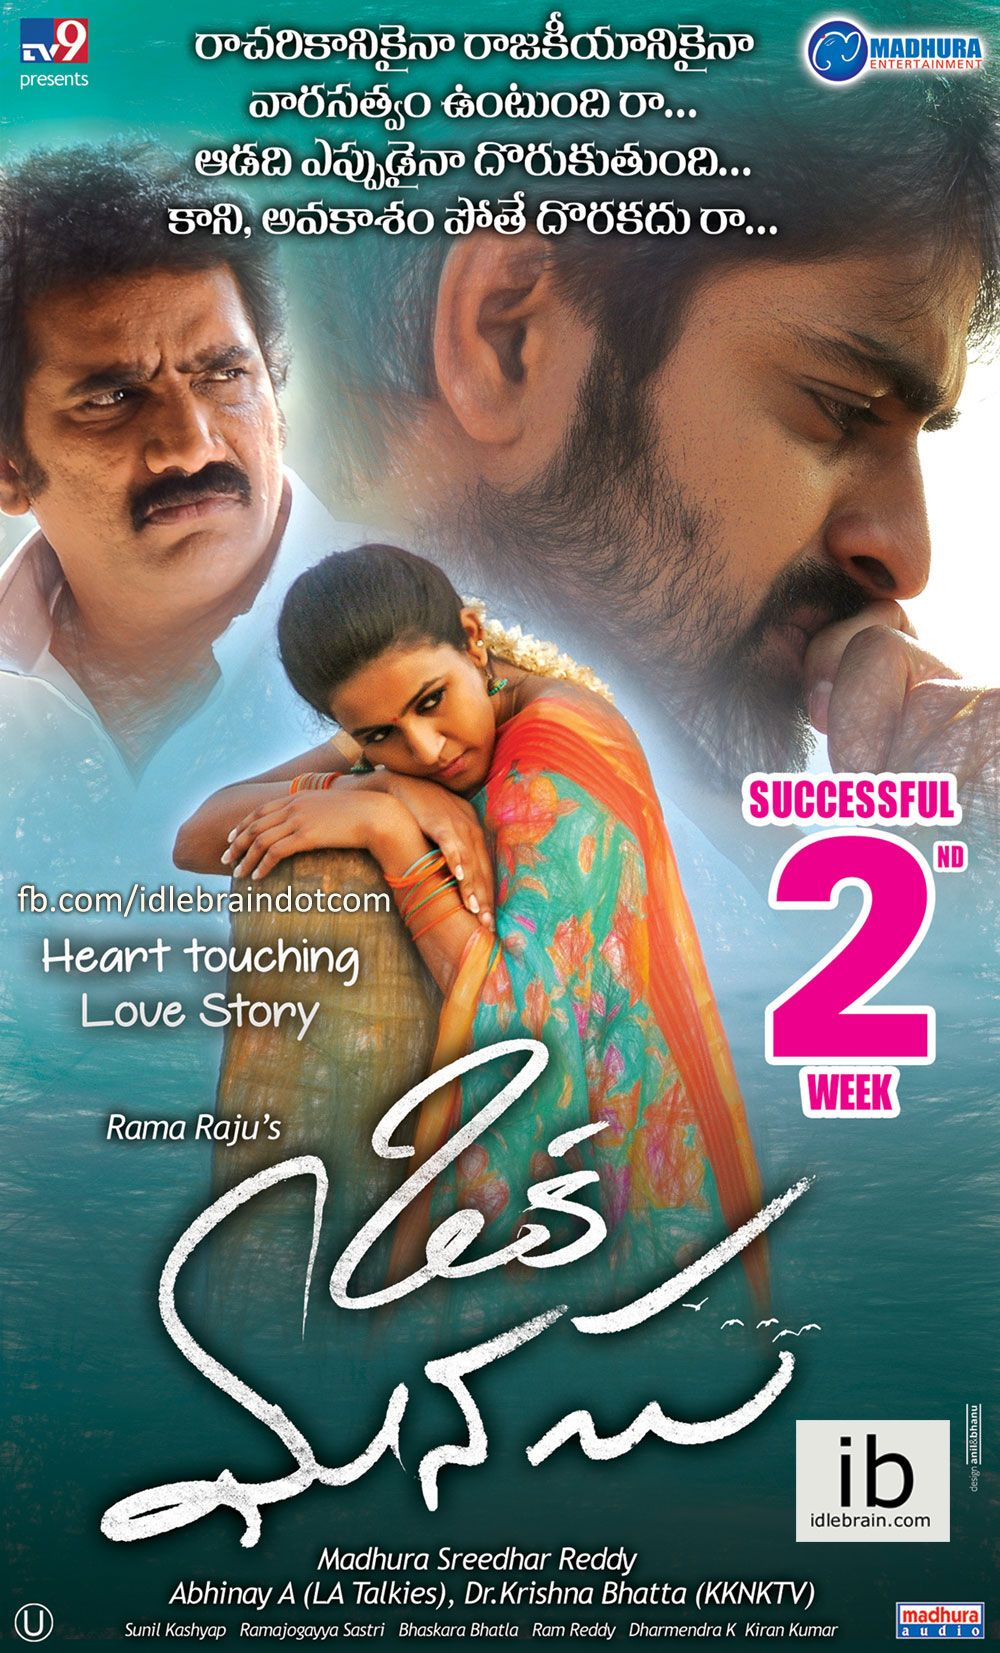 Oka manasu dialogue poster http idlebrain com news today